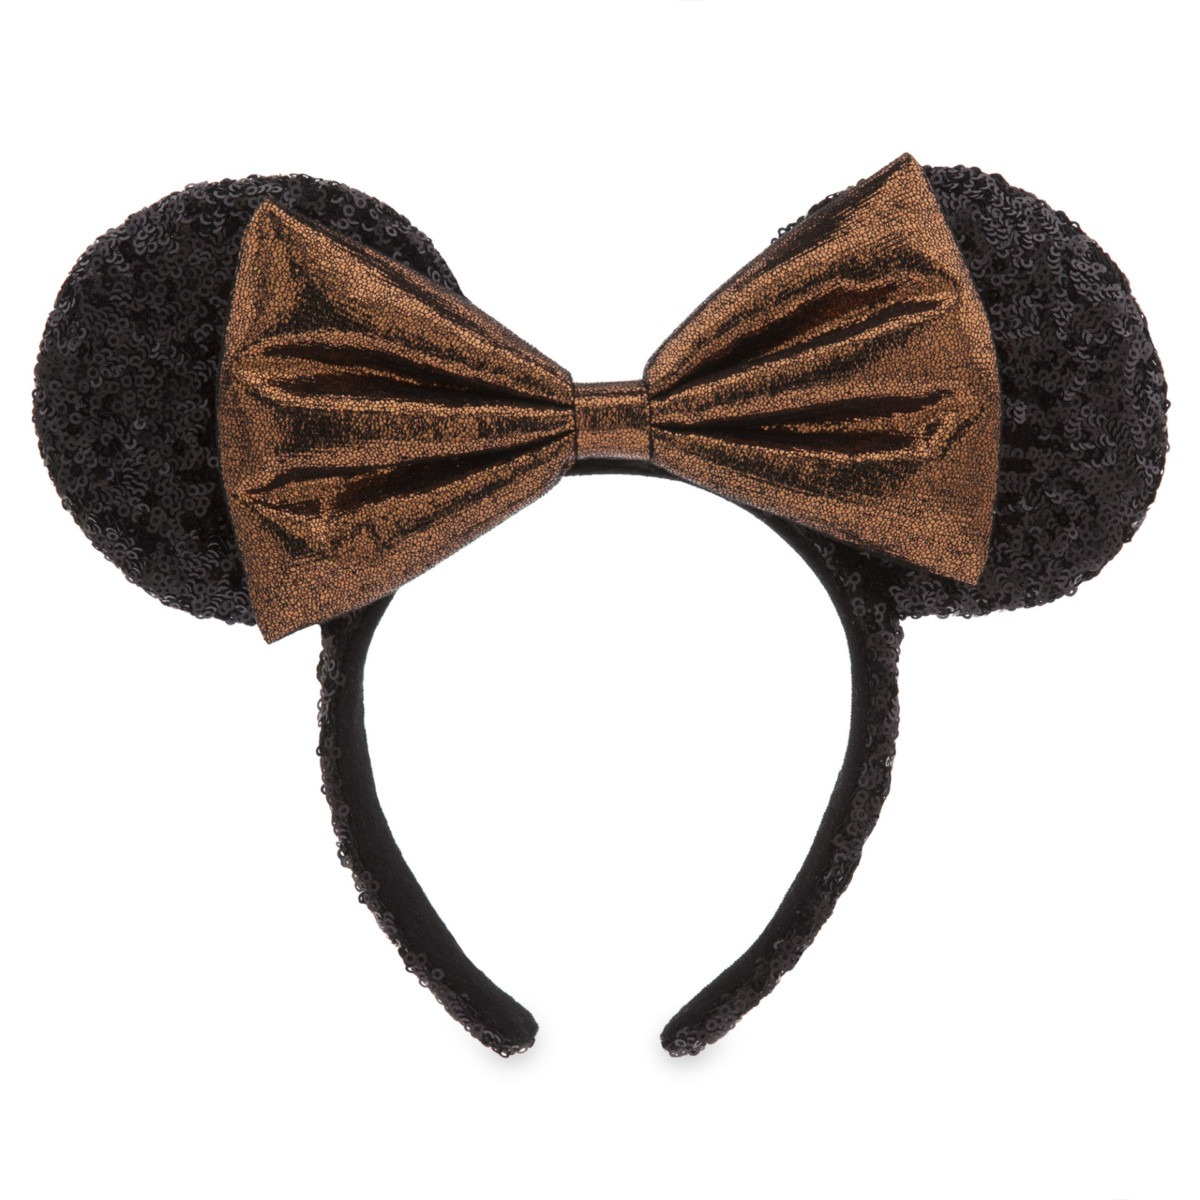 """NEW """"Belle of the Ball Bronze"""" Merch Line Coming Soon! #disneystyle 2"""